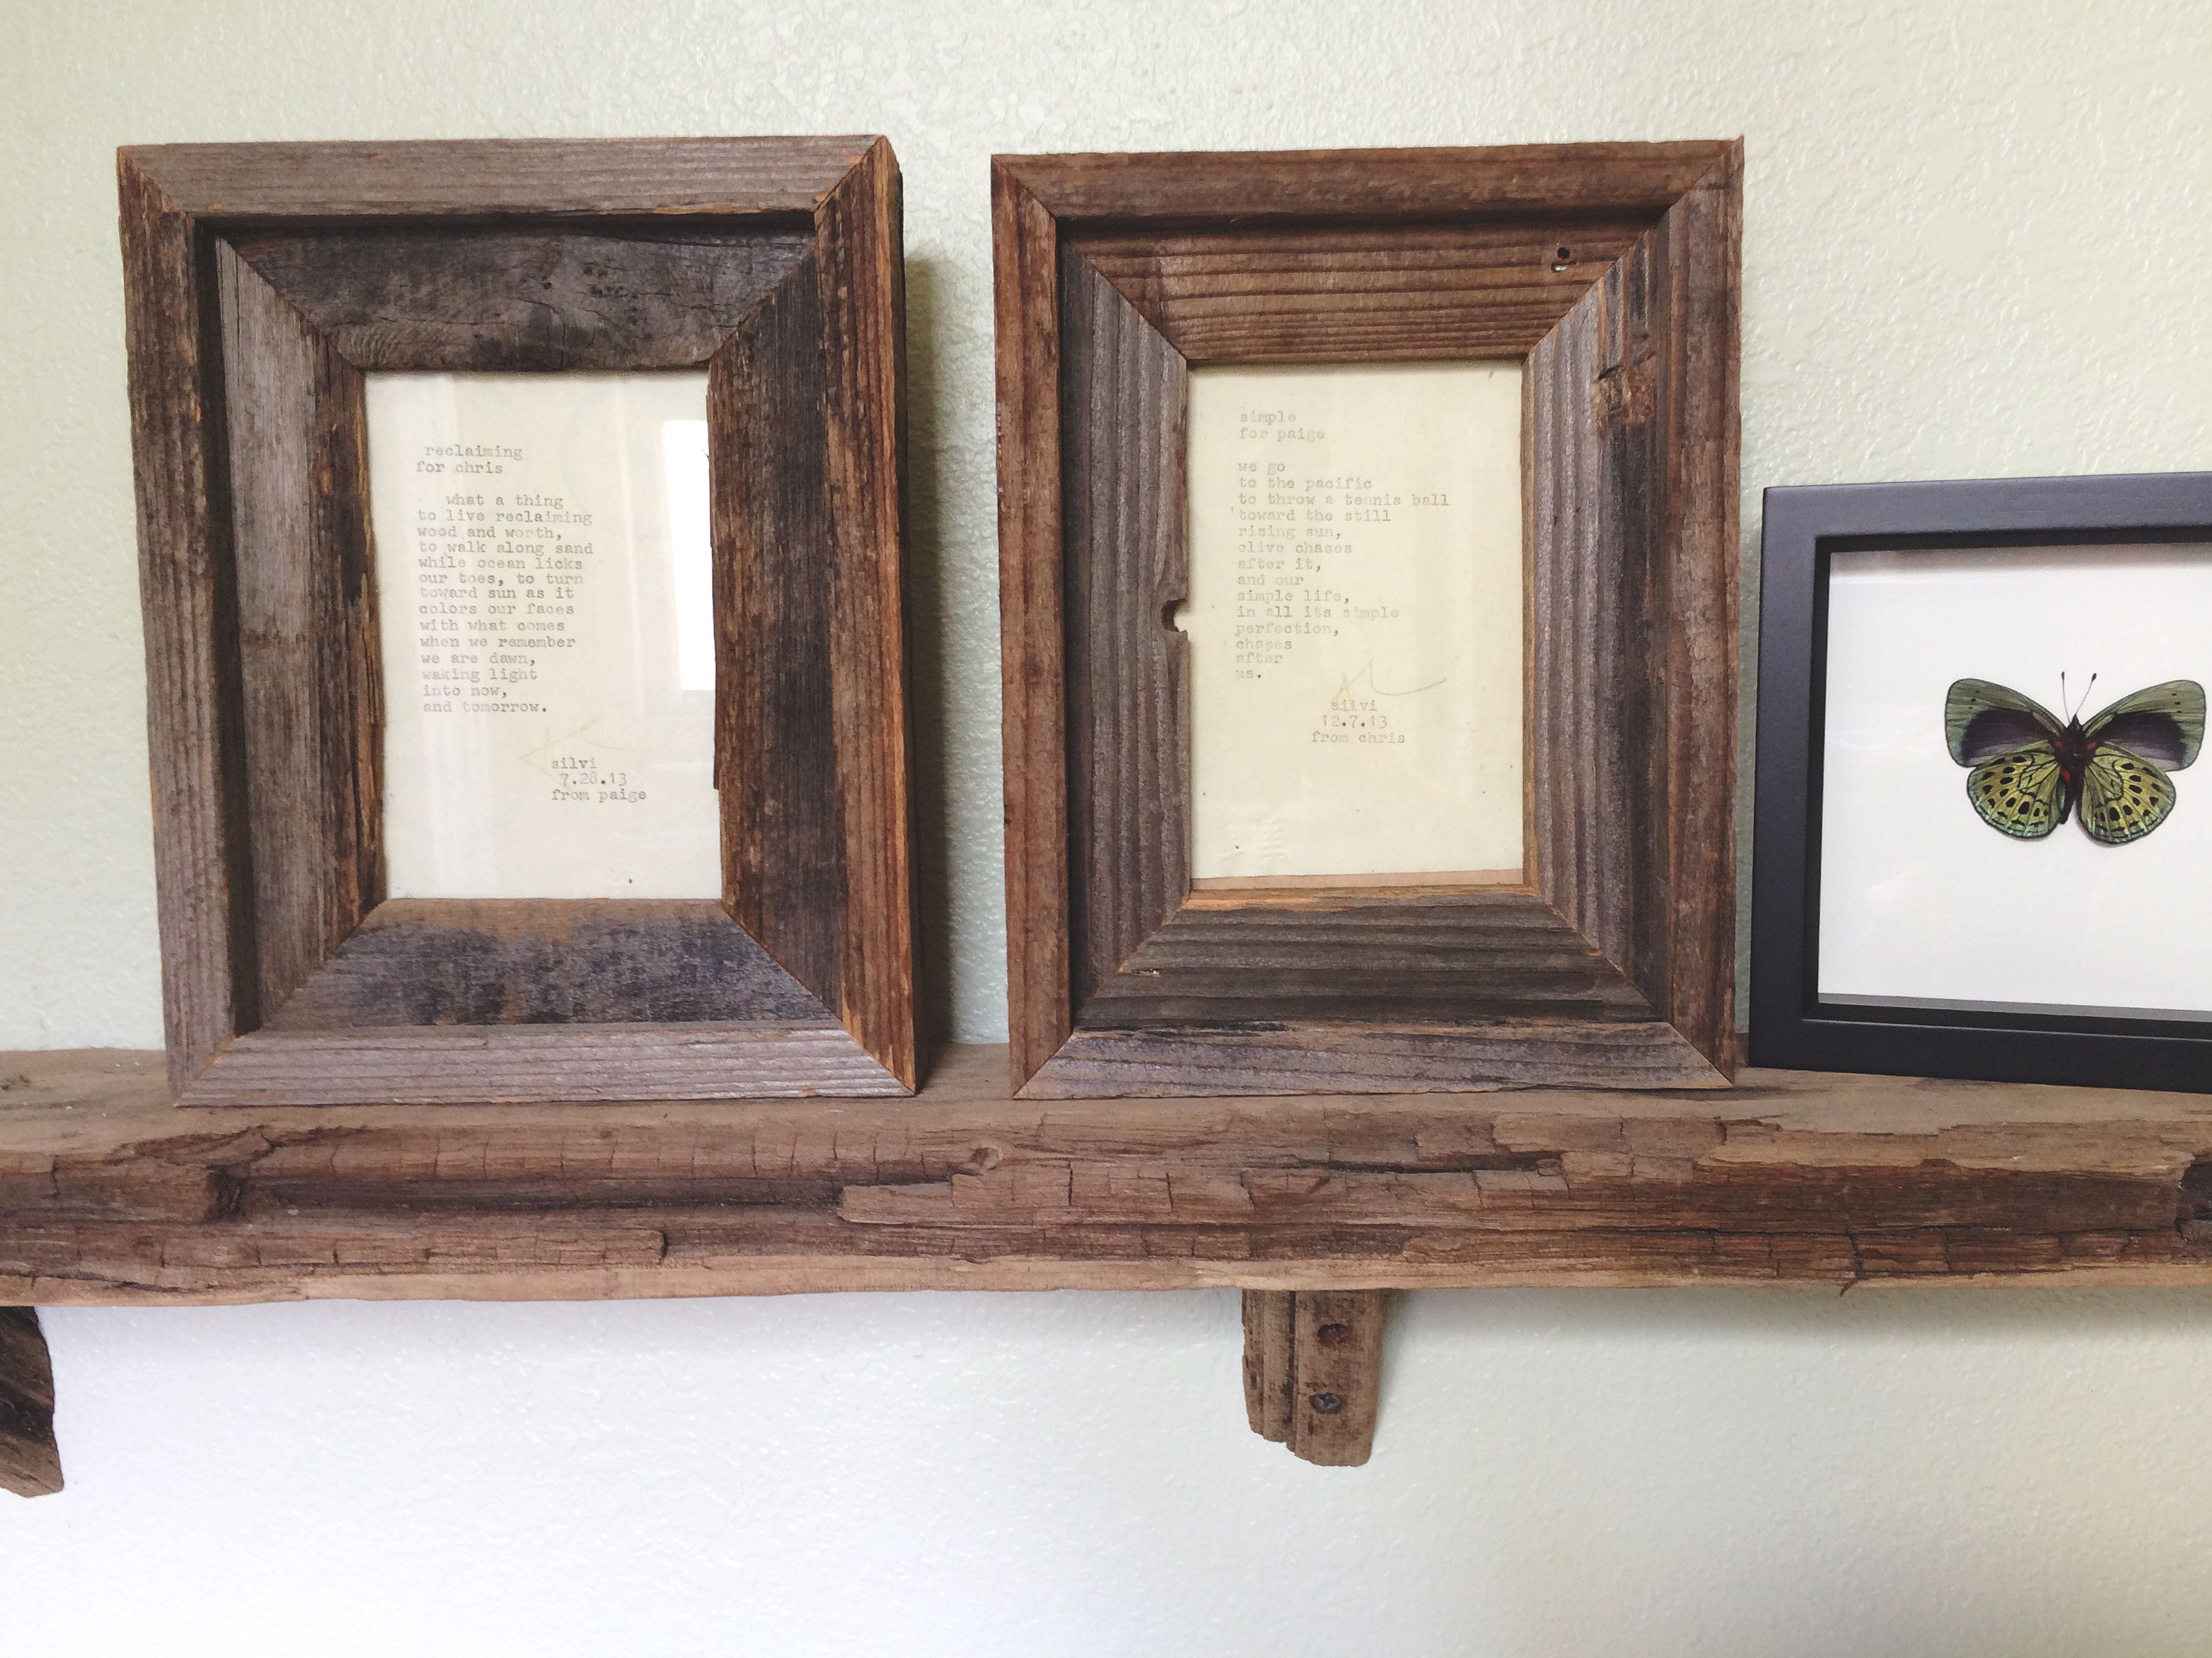 Hand Typed Love Poems To Each Other Reclaimed Wood 4x6 Frames